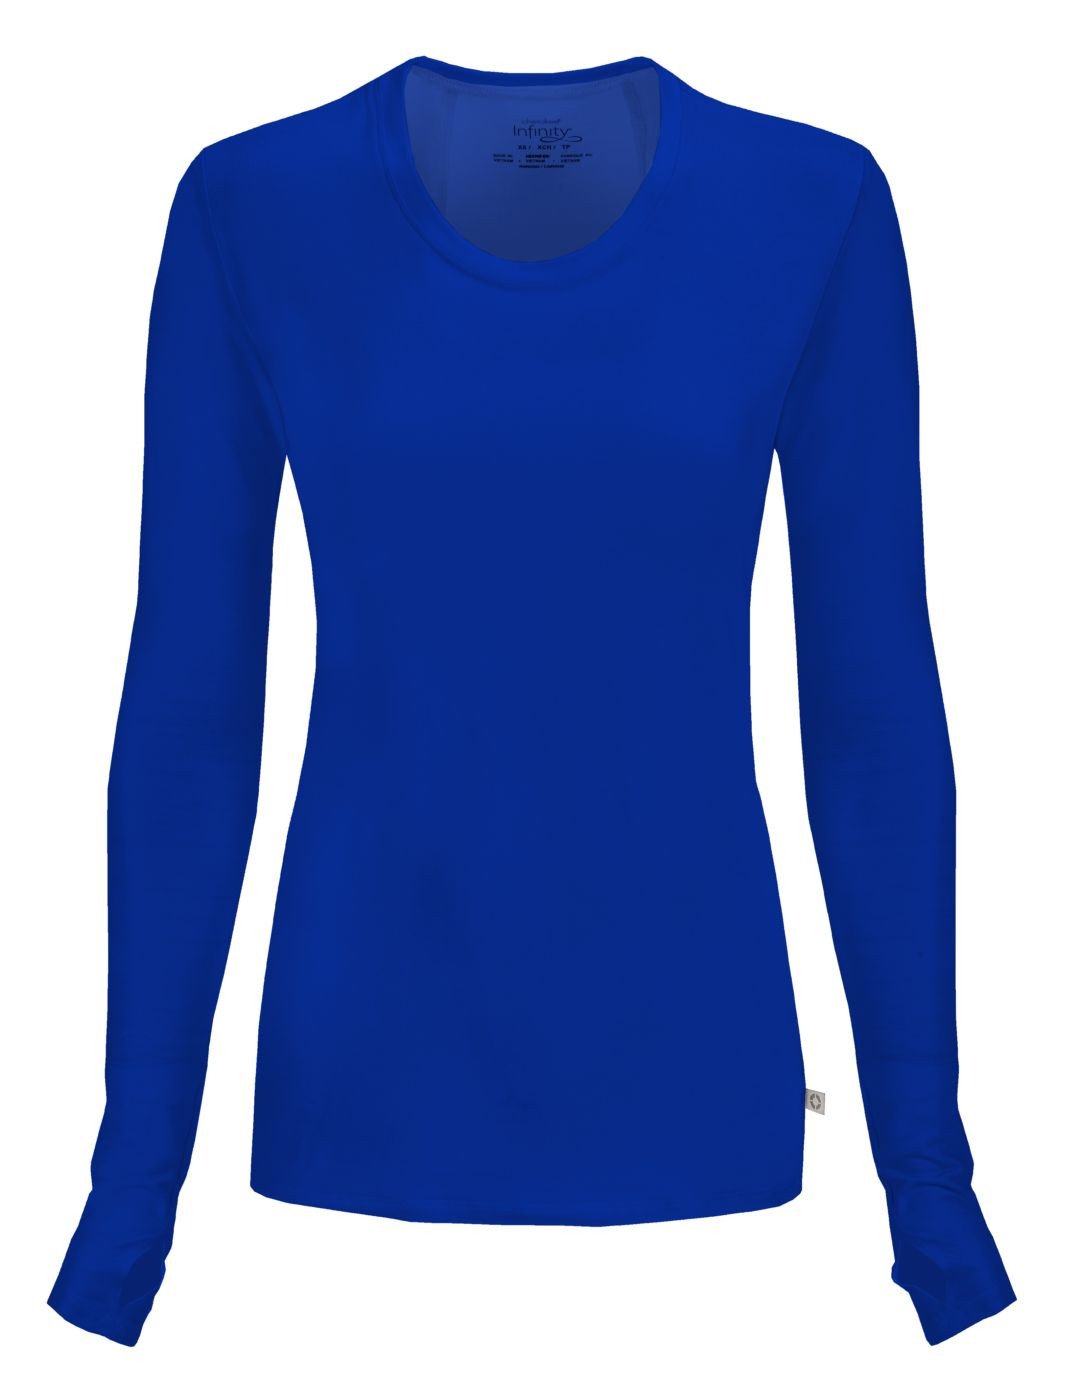 nyps men blue colorblock infinity by neck from uniforms product s cherokee crew top